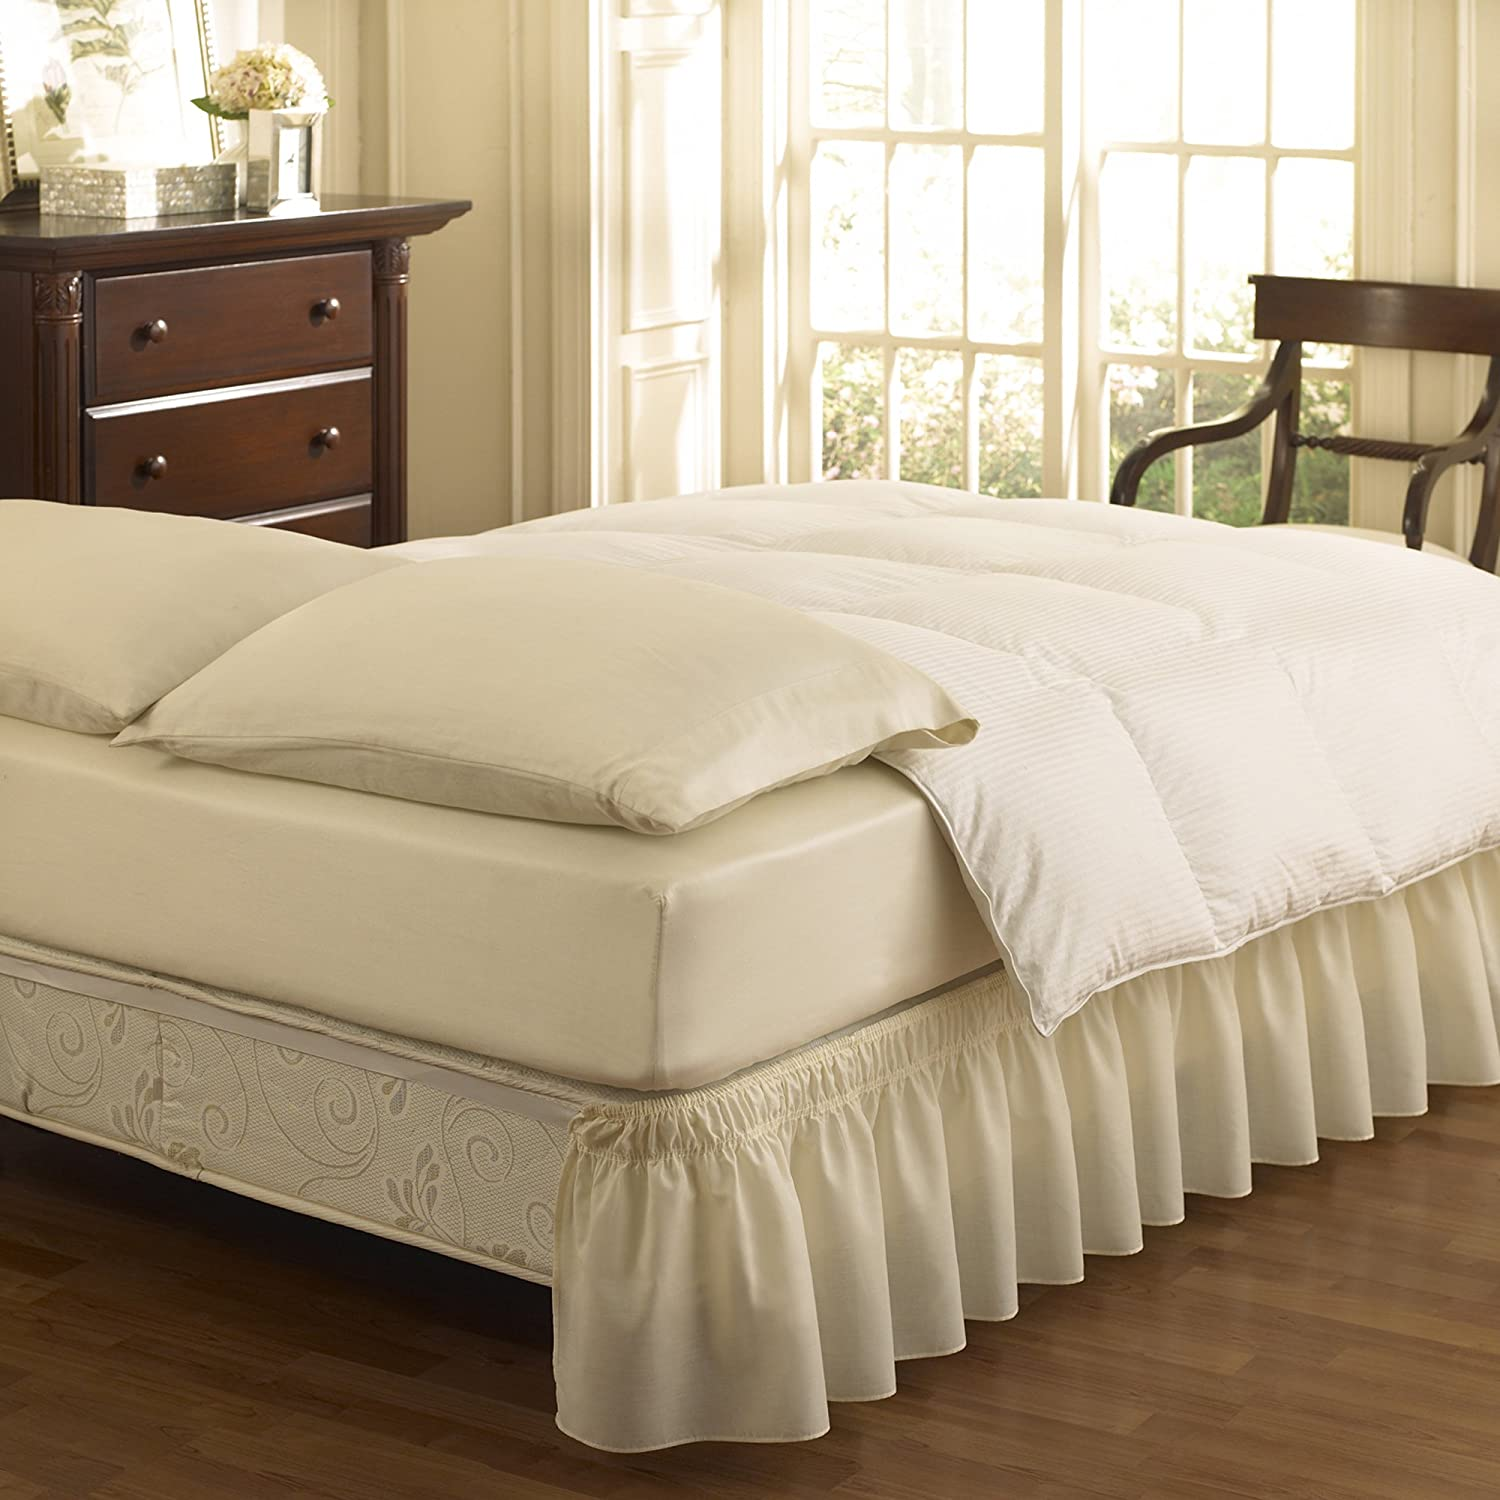 king bed skirt easy fit ruffled solid bed skirt king ivory new 980